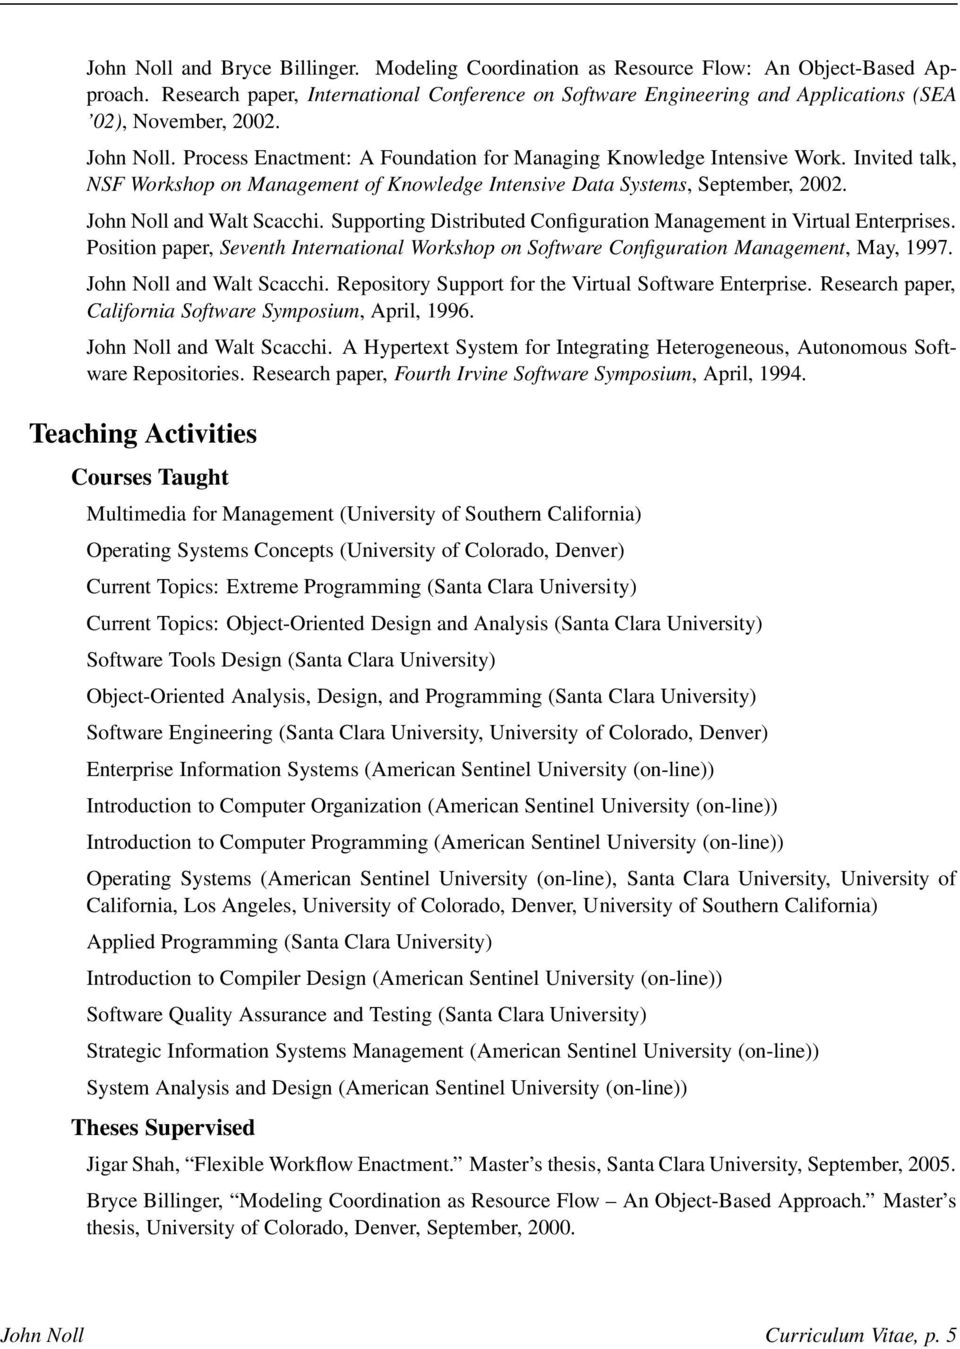 Invited talk, NSF Workshop on Management of Knowledge Intensive Data Systems, September, 2002. John Noll and Walt Scacchi. Supporting Distributed Configuration Management in Virtual Enterprises.